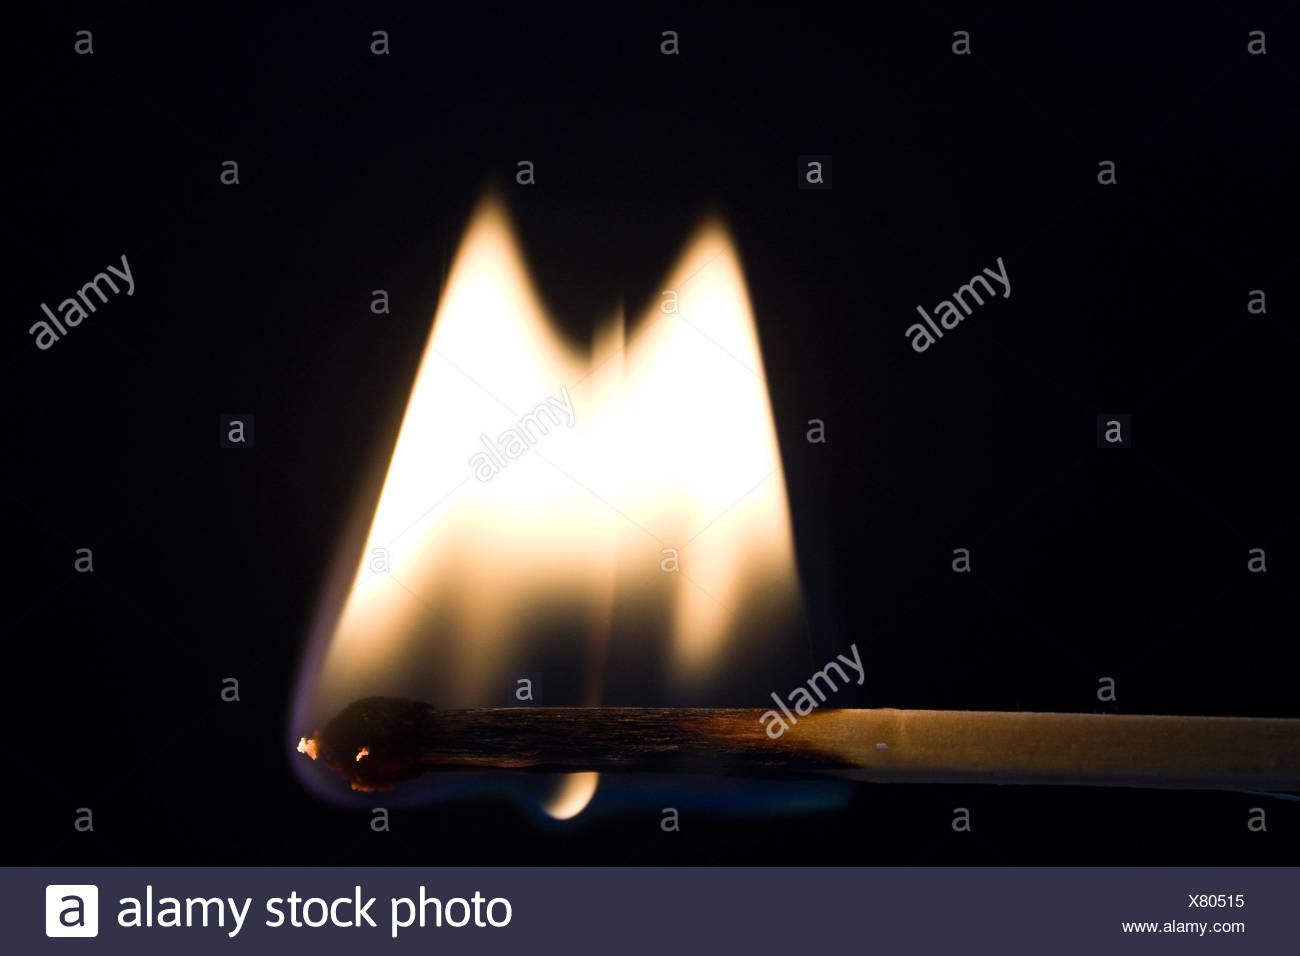 fire, conflagration, to burn down, match, matches, kindle, burn, smoke, Stock Photo